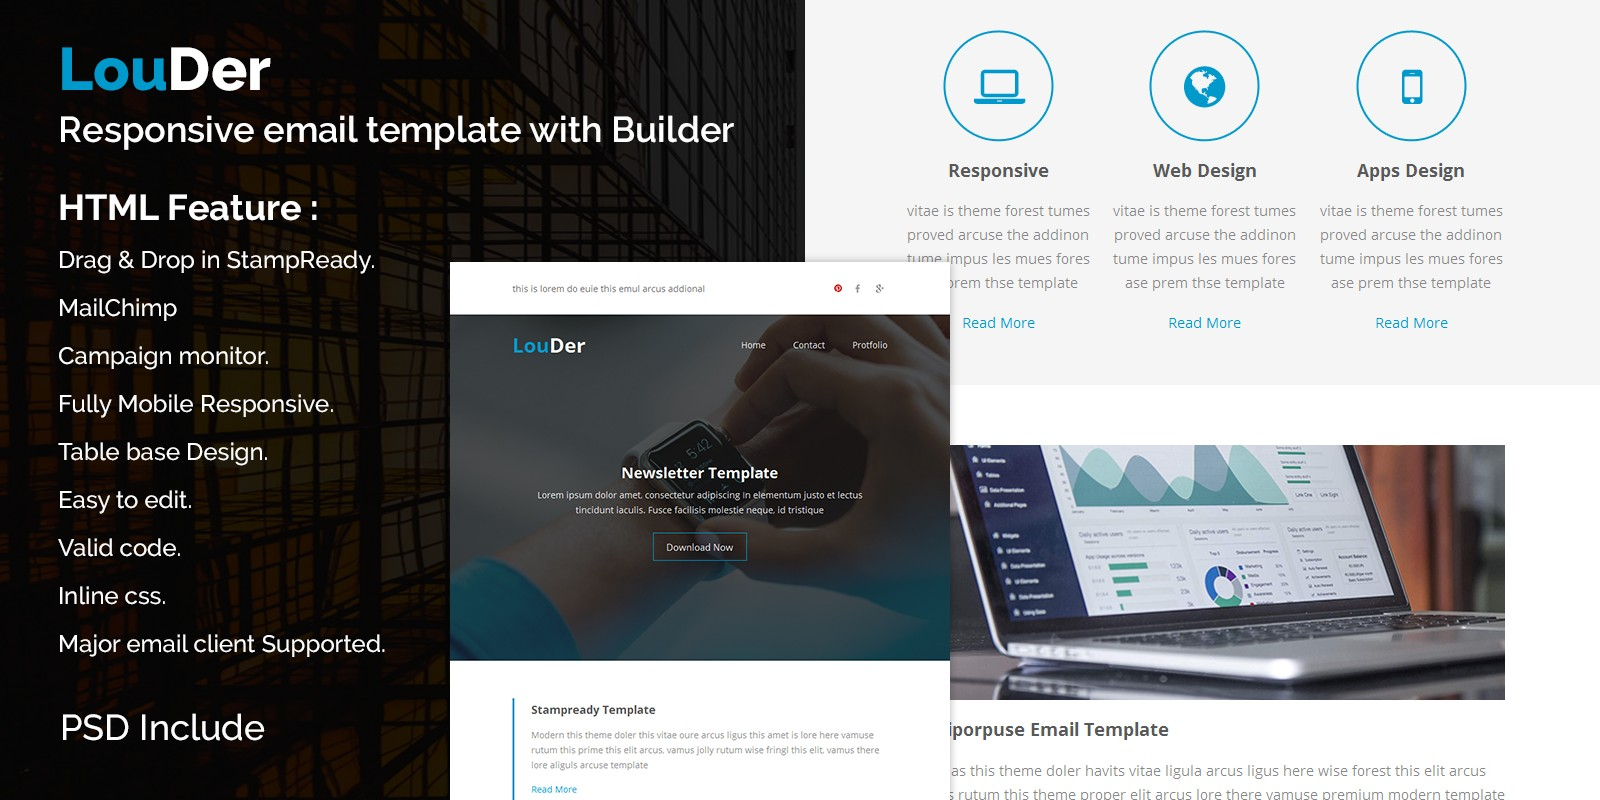 Louder - Responsive Email Template